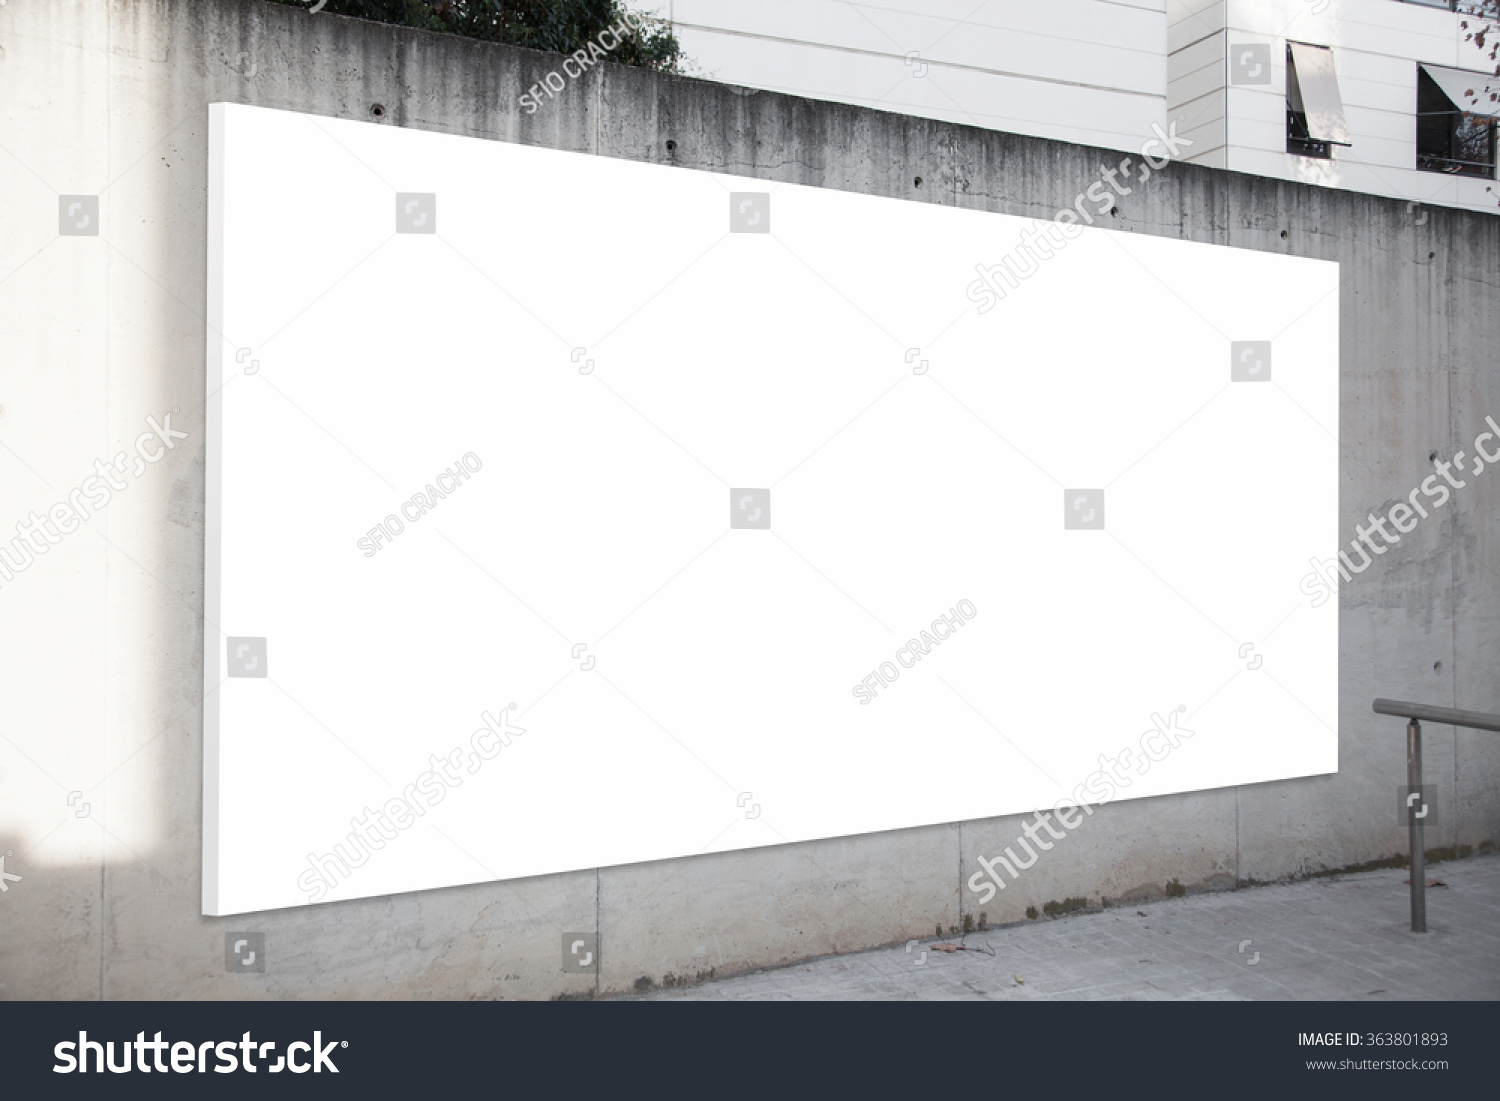 Empty billboard on the concrete gray background White screen